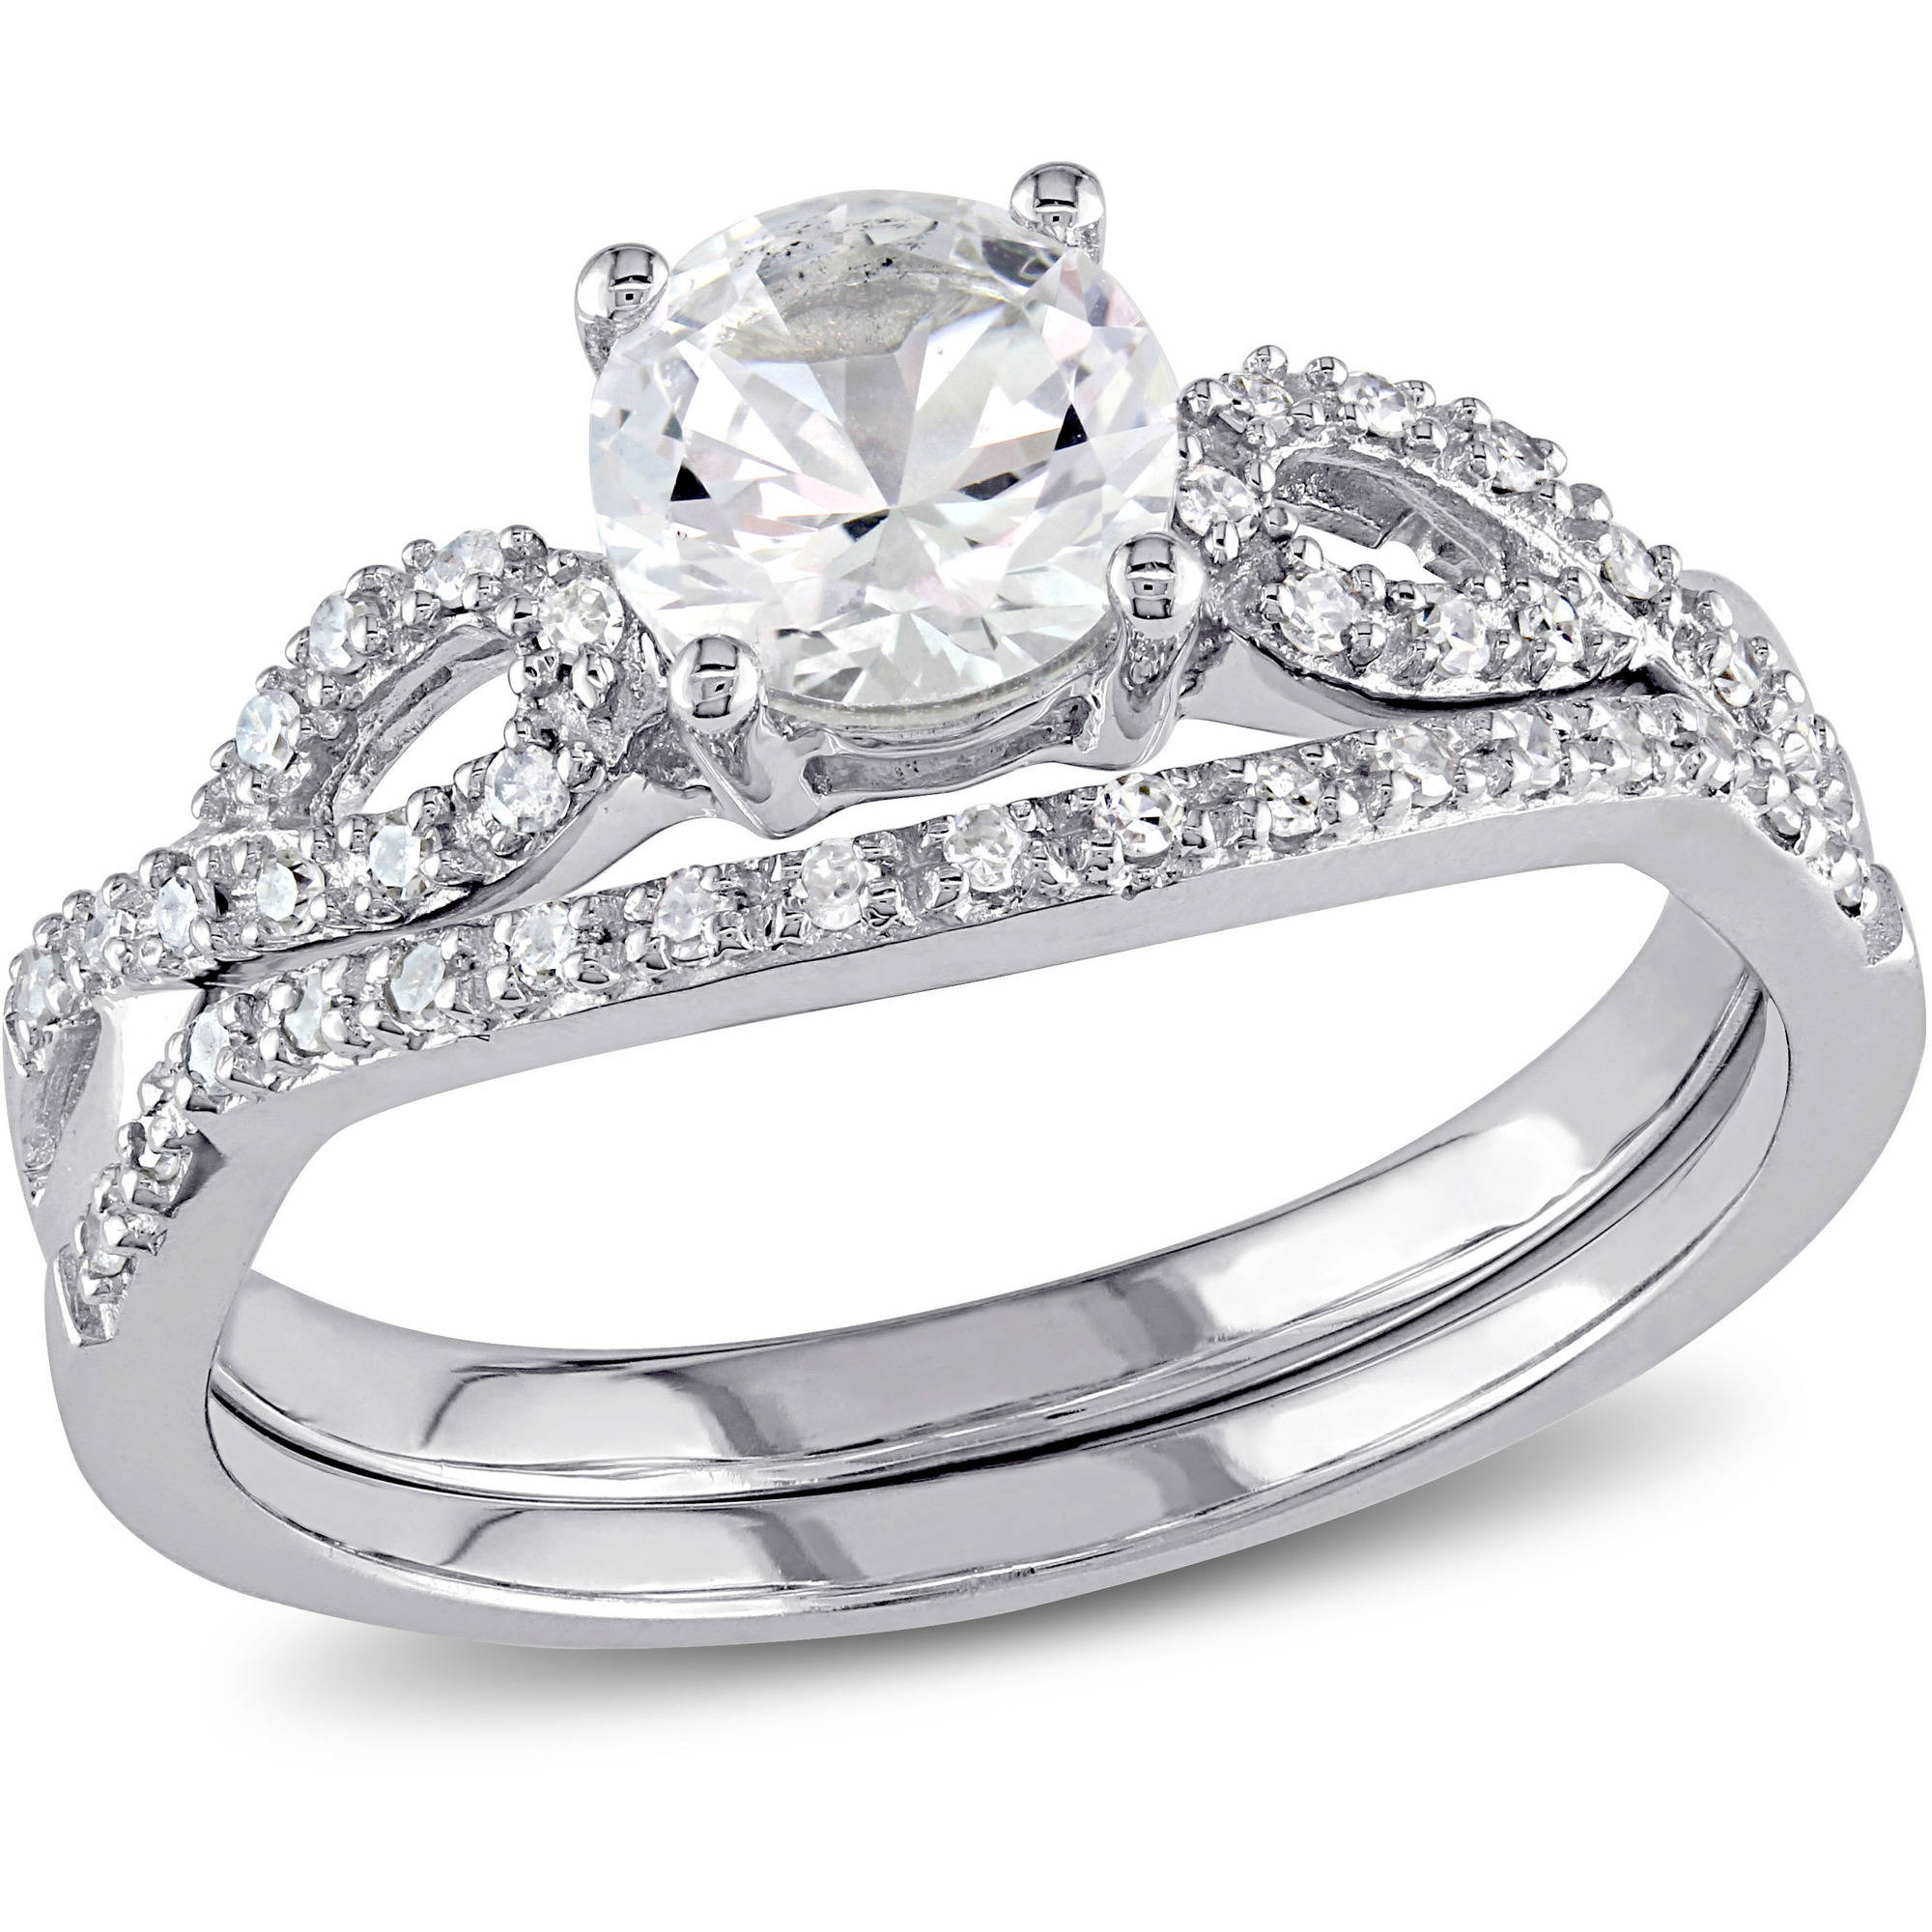 Miabella 1 Carat T.G.W. Created White Sapphire and 1/6 Carat T.W. Diamond 10kt White Gold Infinity Bridal Set